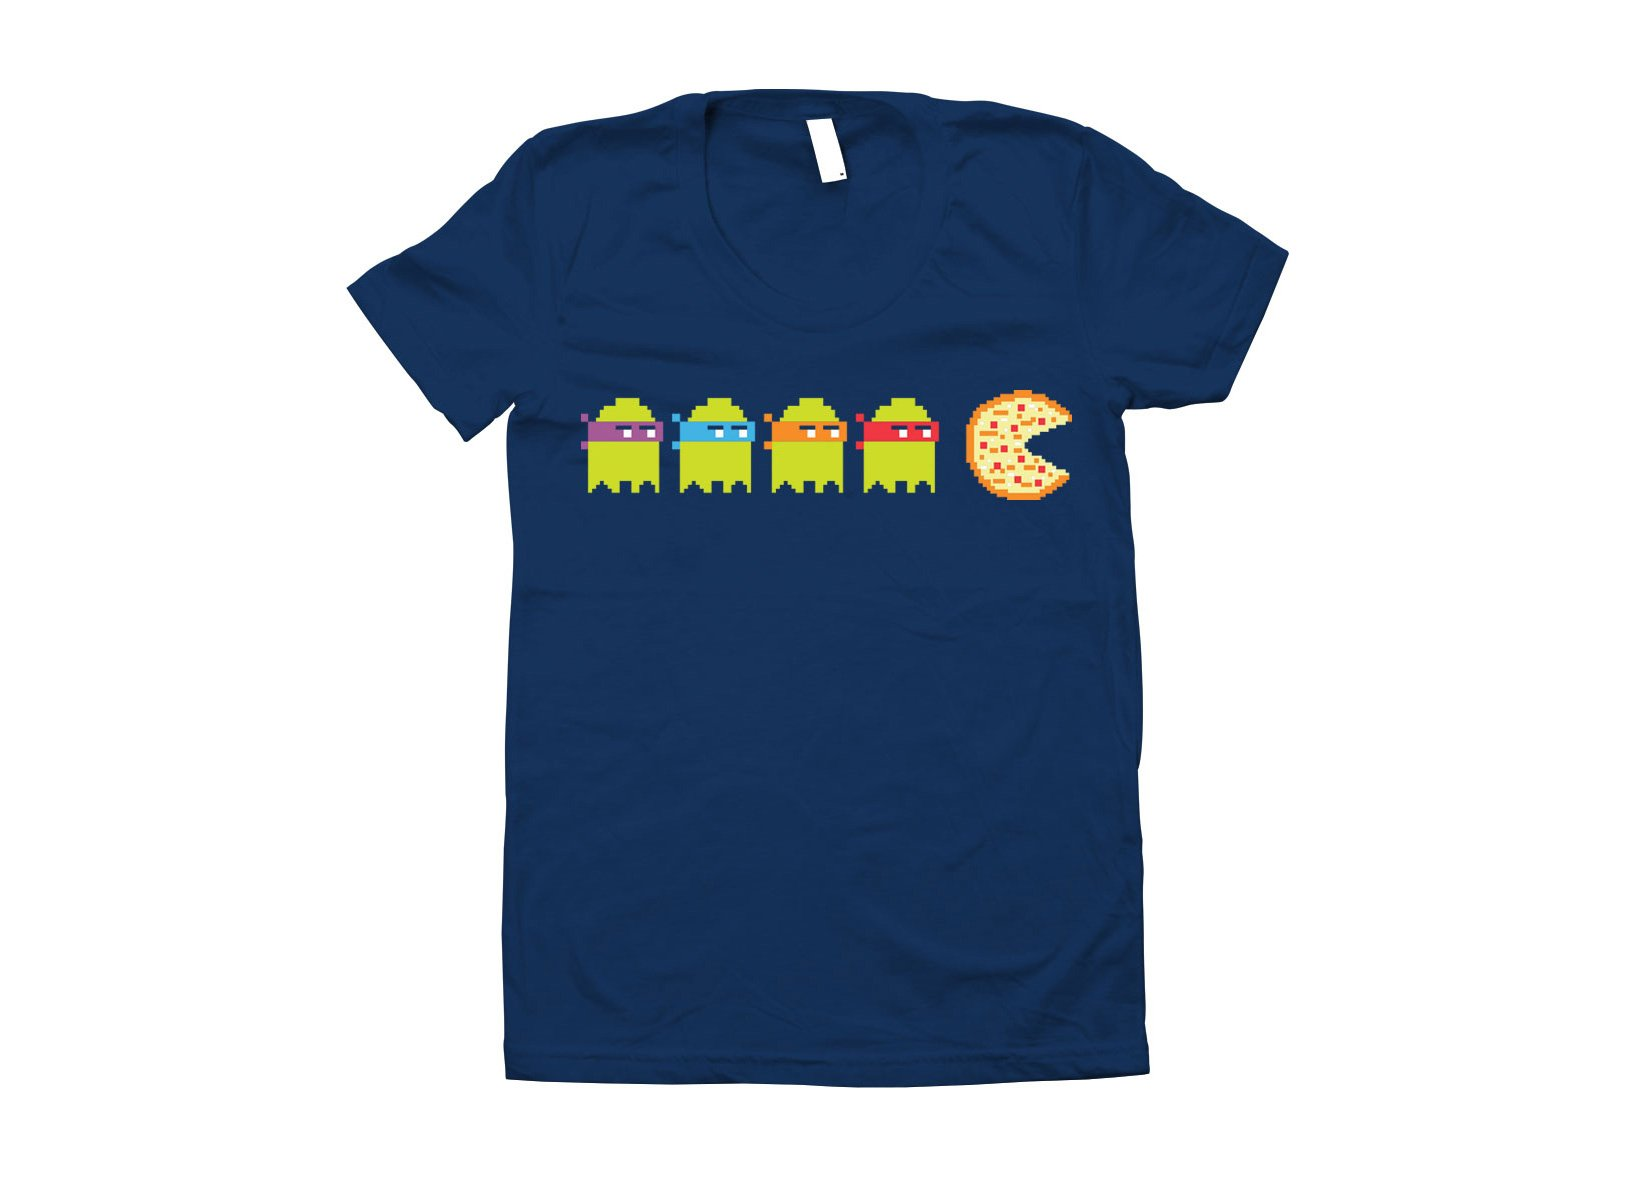 Teenage Mutant Ninja Ghosts on Juniors T-Shirt